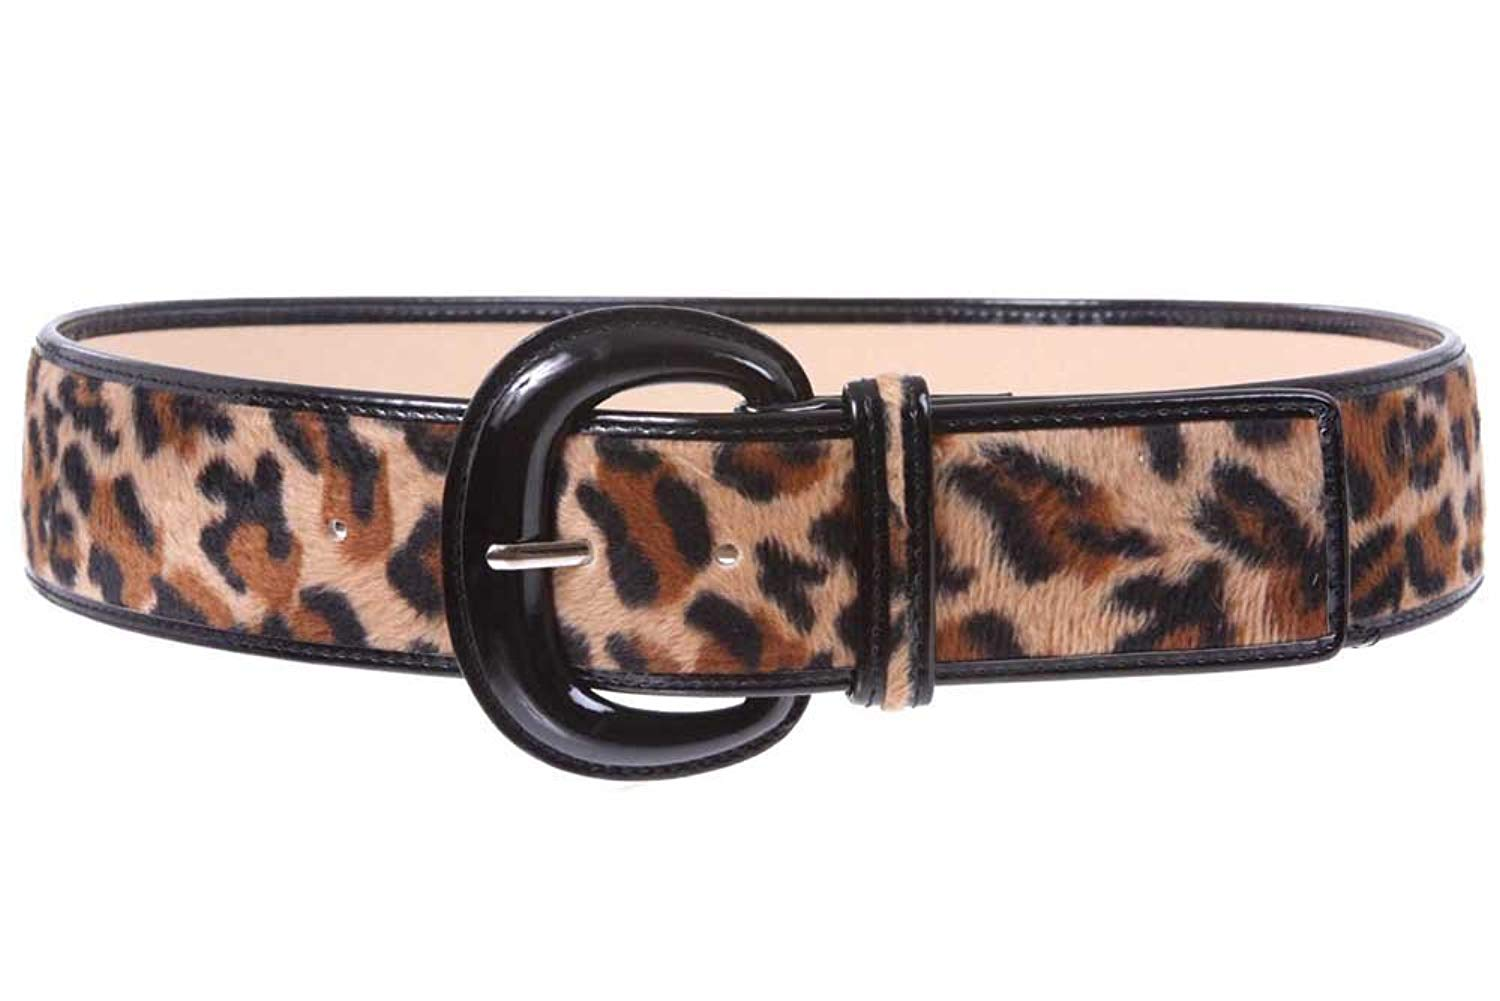 MONIQUE Women Square Buckle Non Leather Fabric Braided Woven 58mm Wide Belt